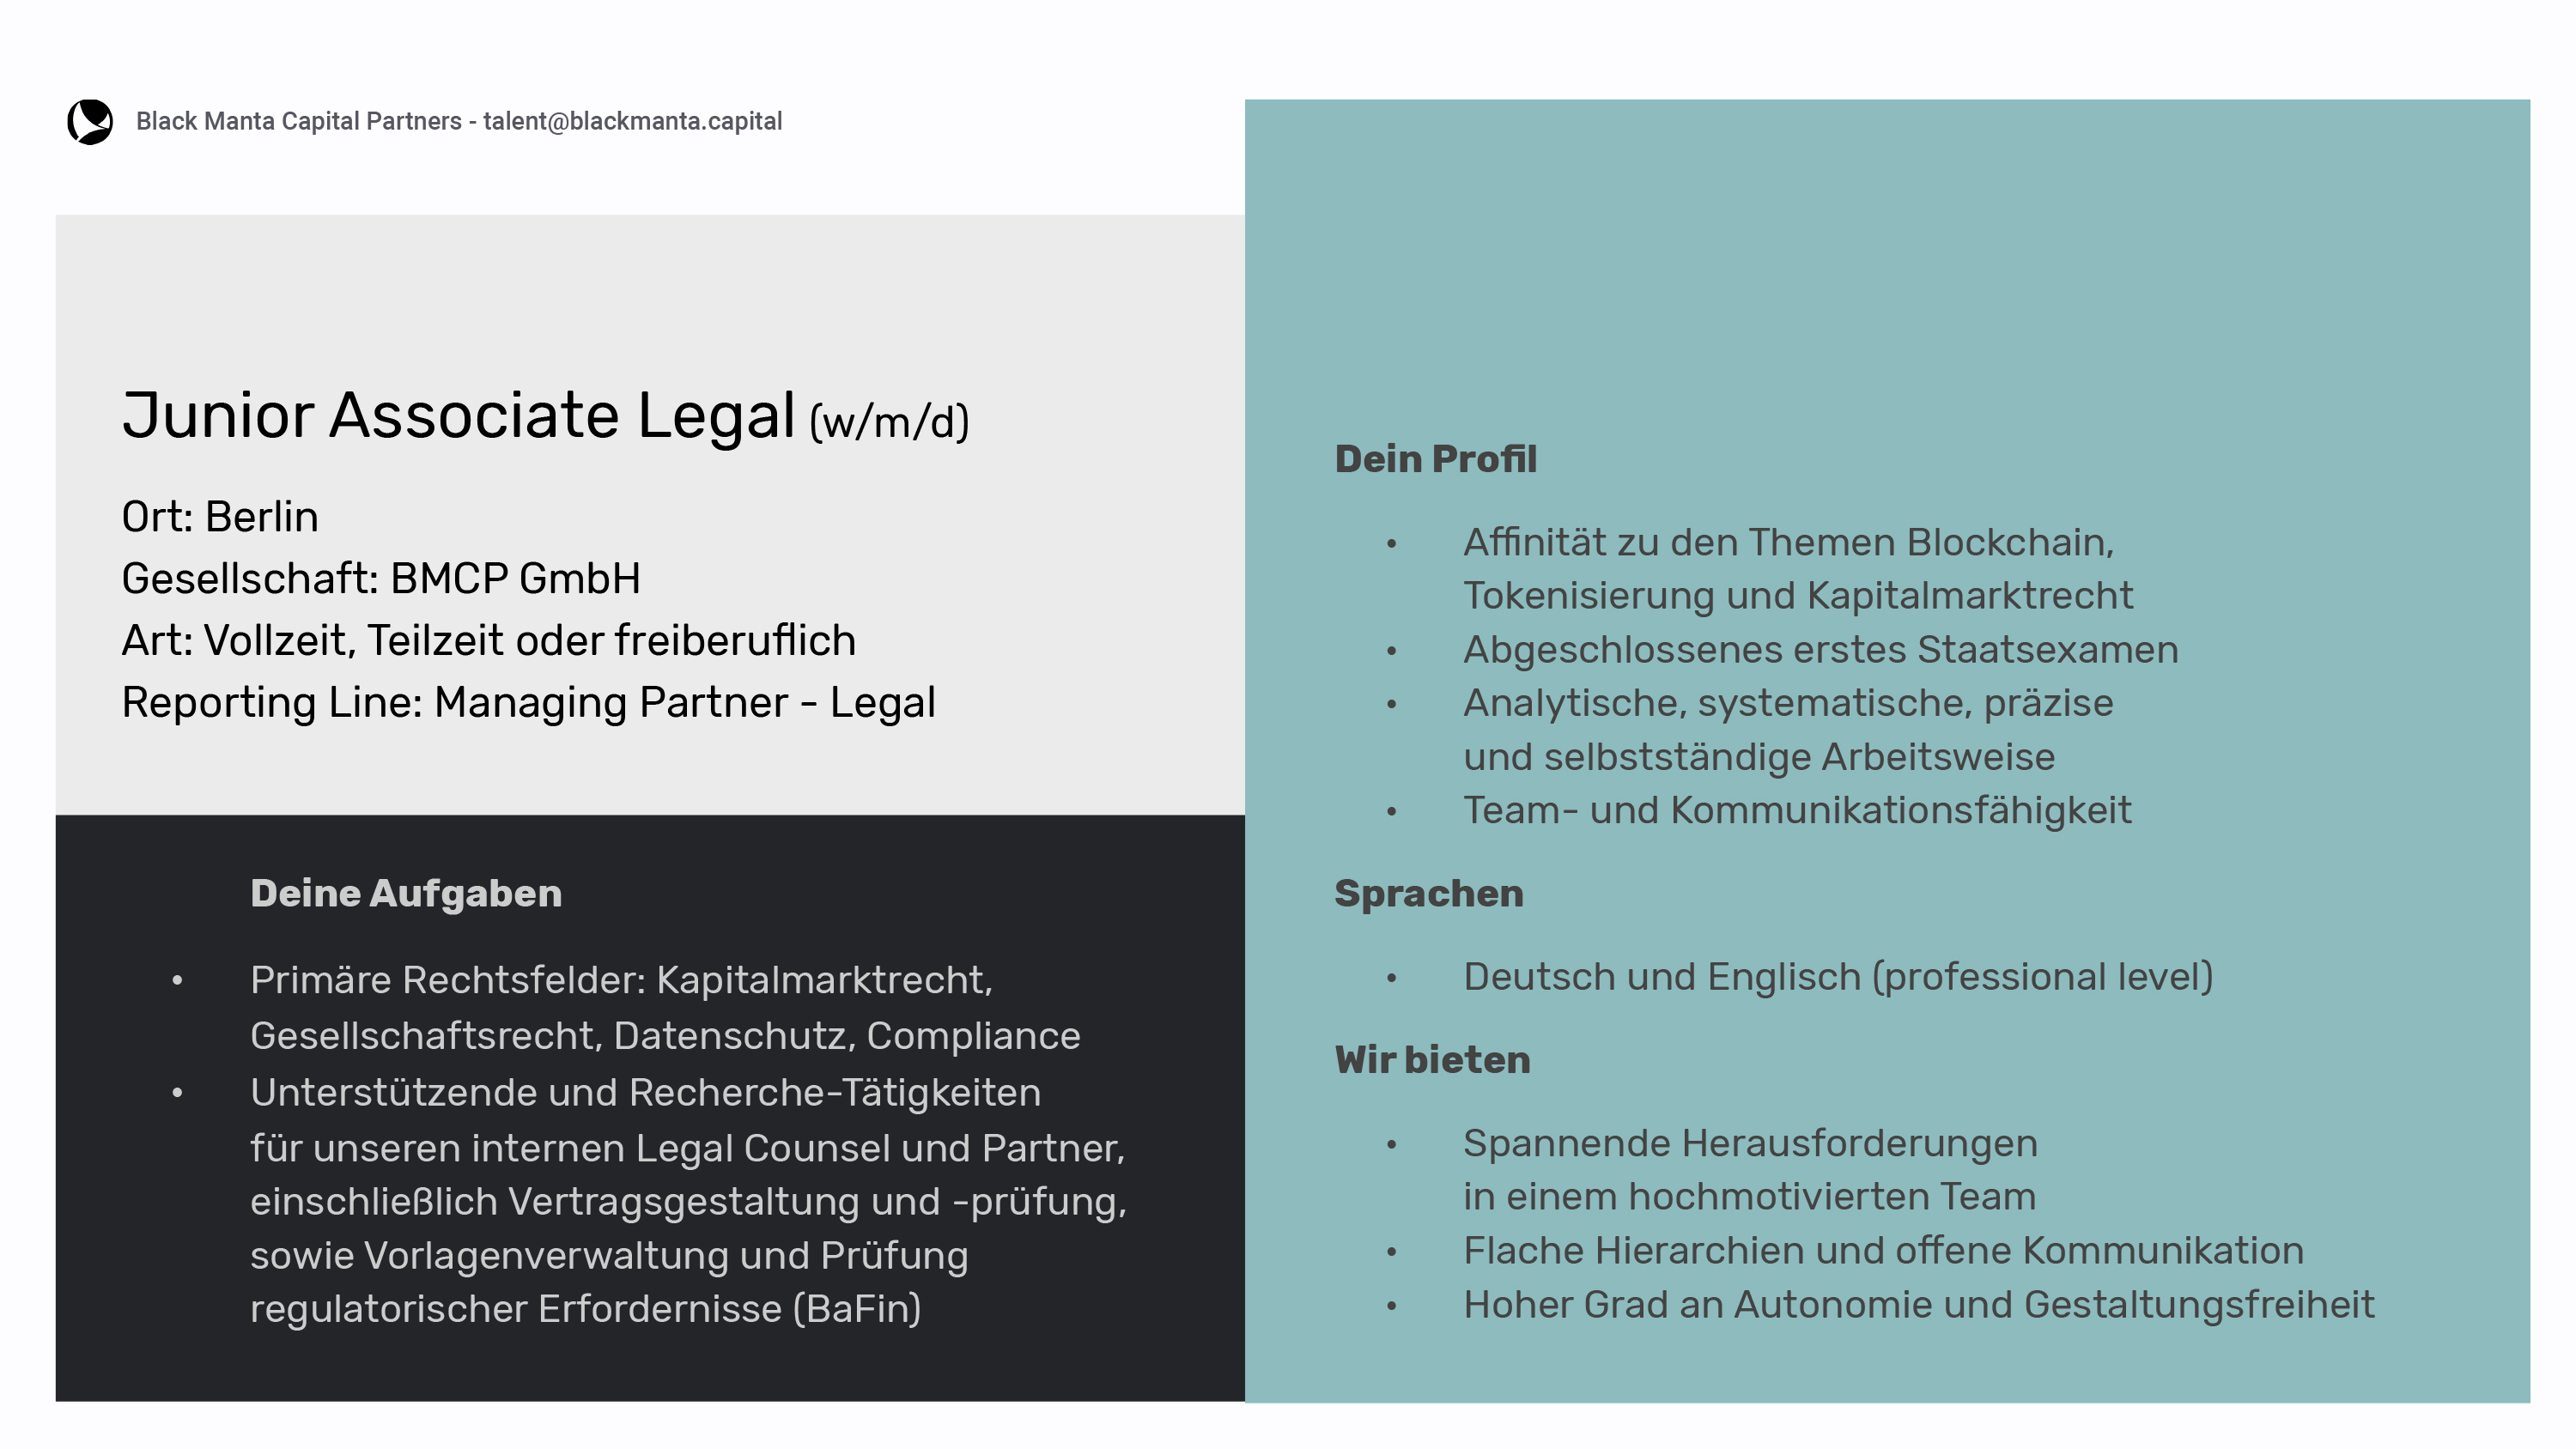 BER Junior Associate Legal Germany